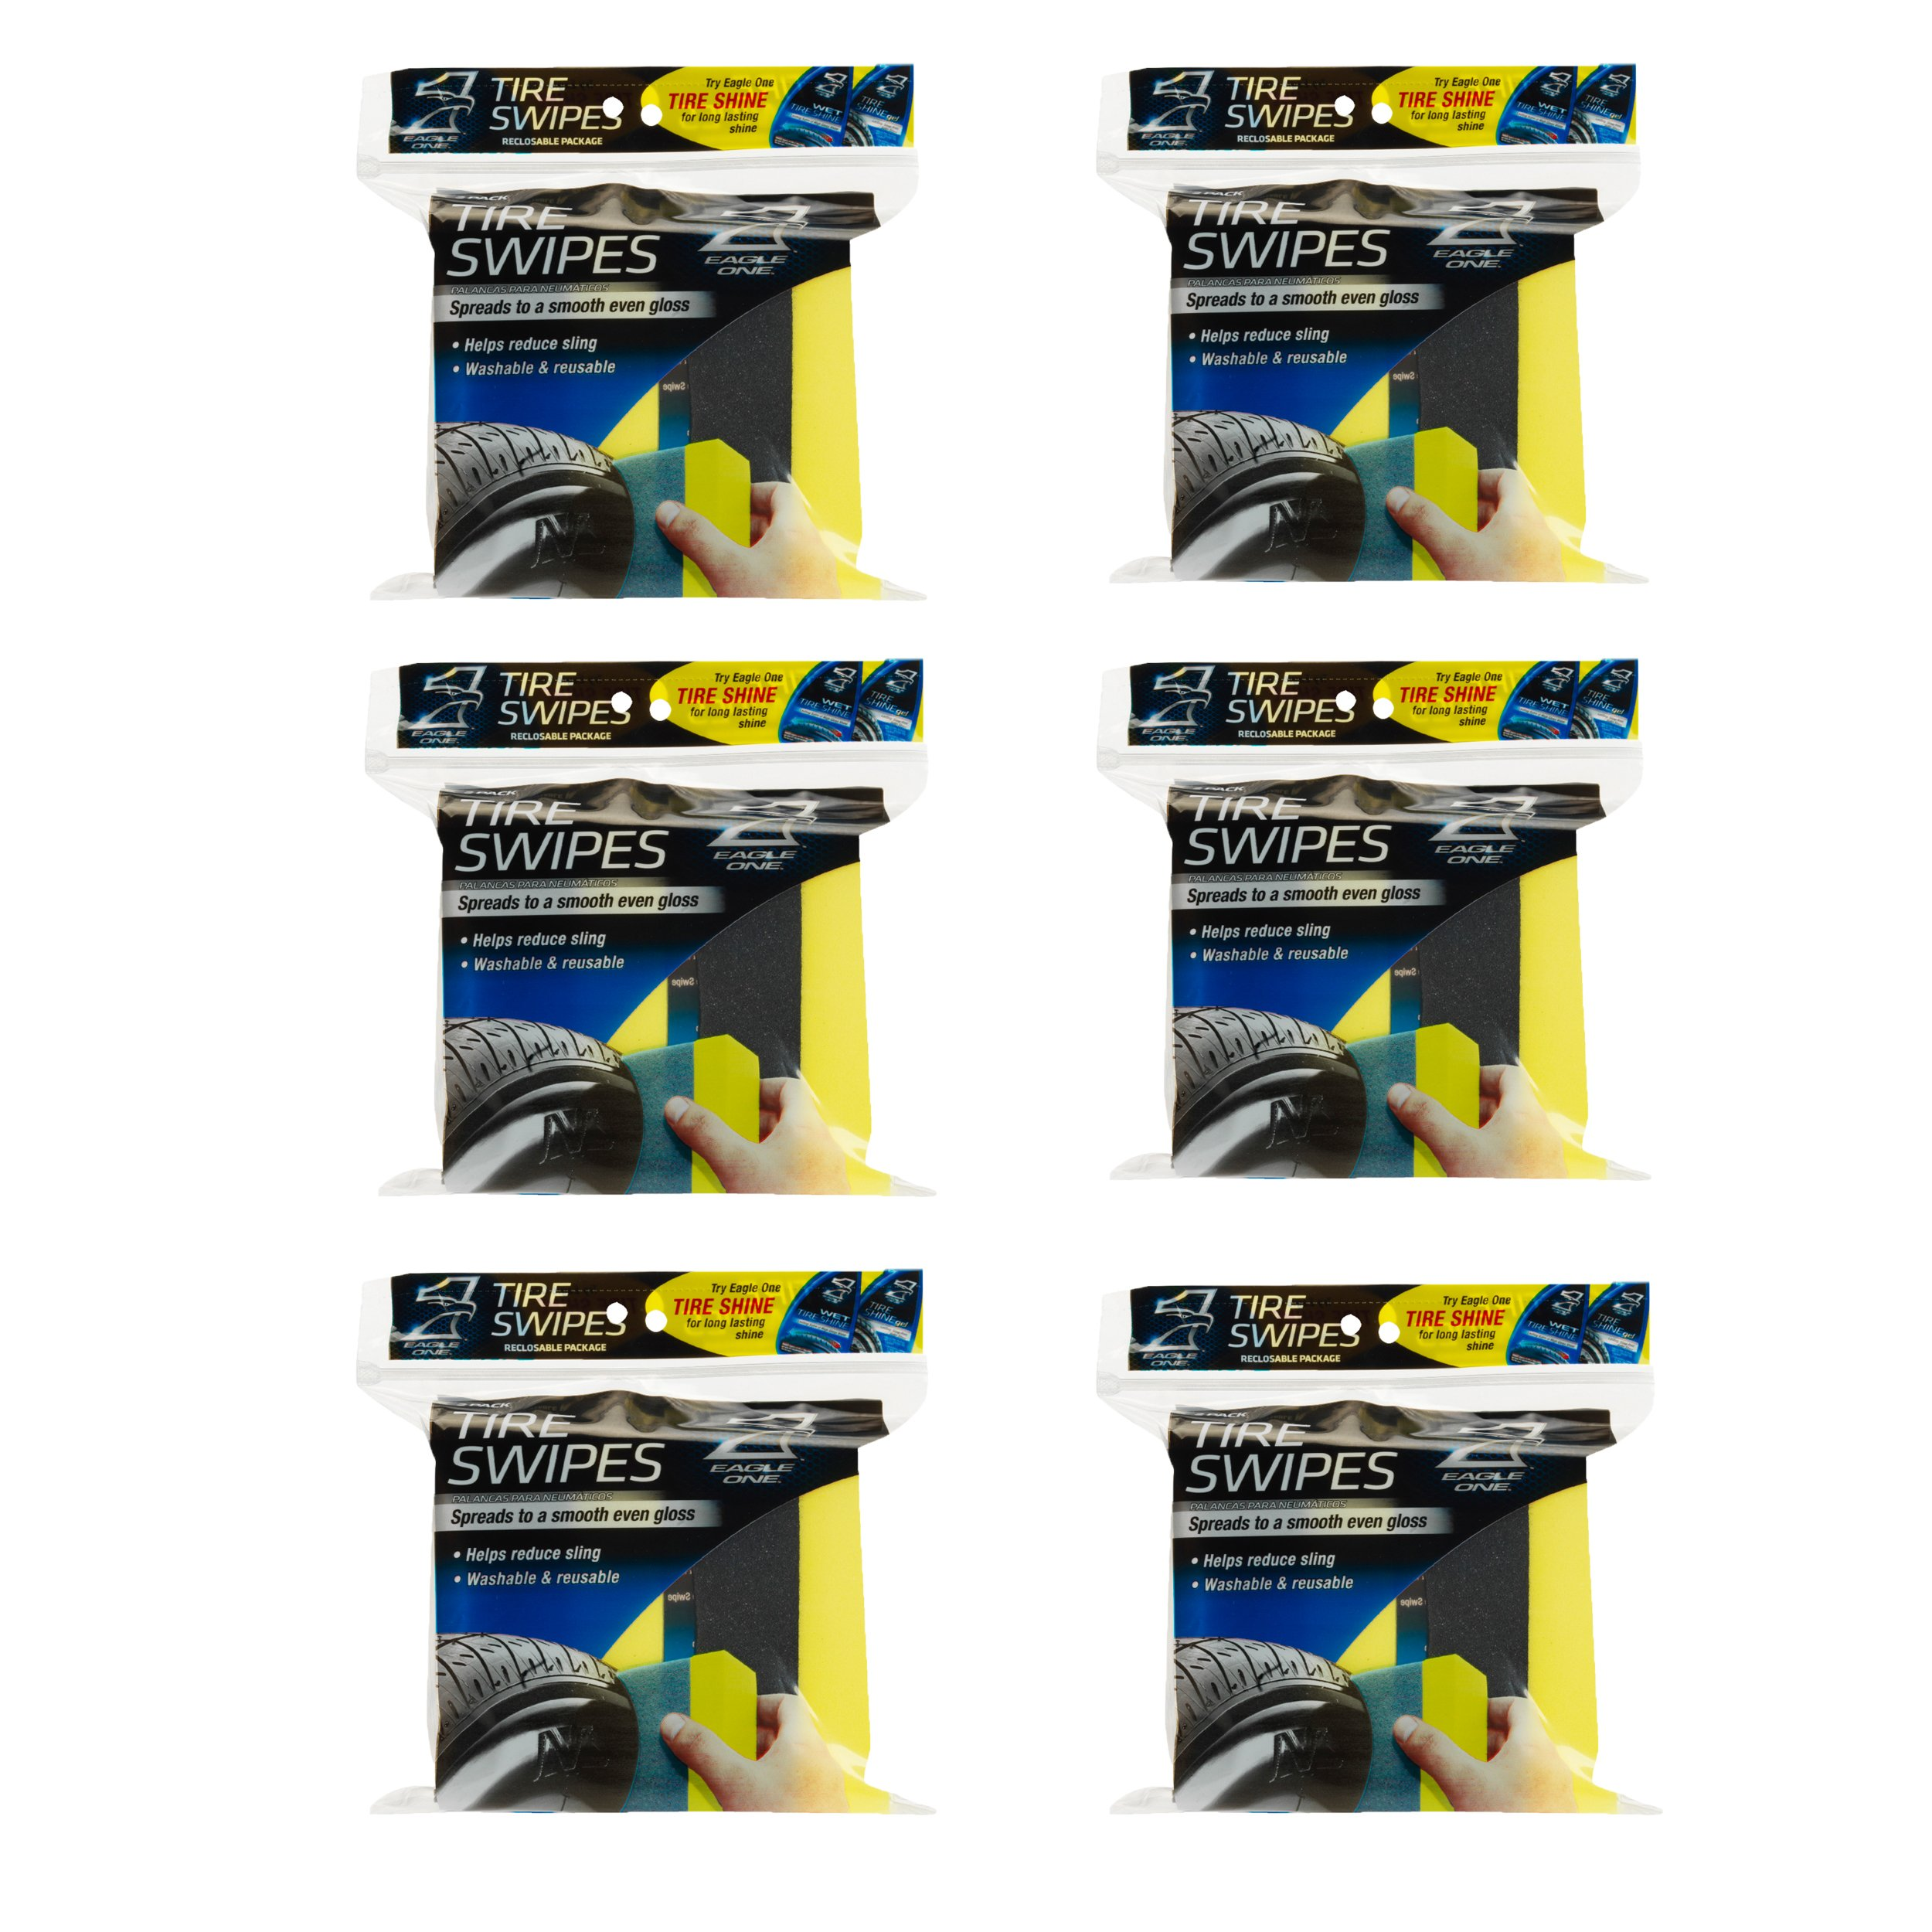 Eagle One 5010602-6PK Tire Swipe - 2 Count, Pack of 6